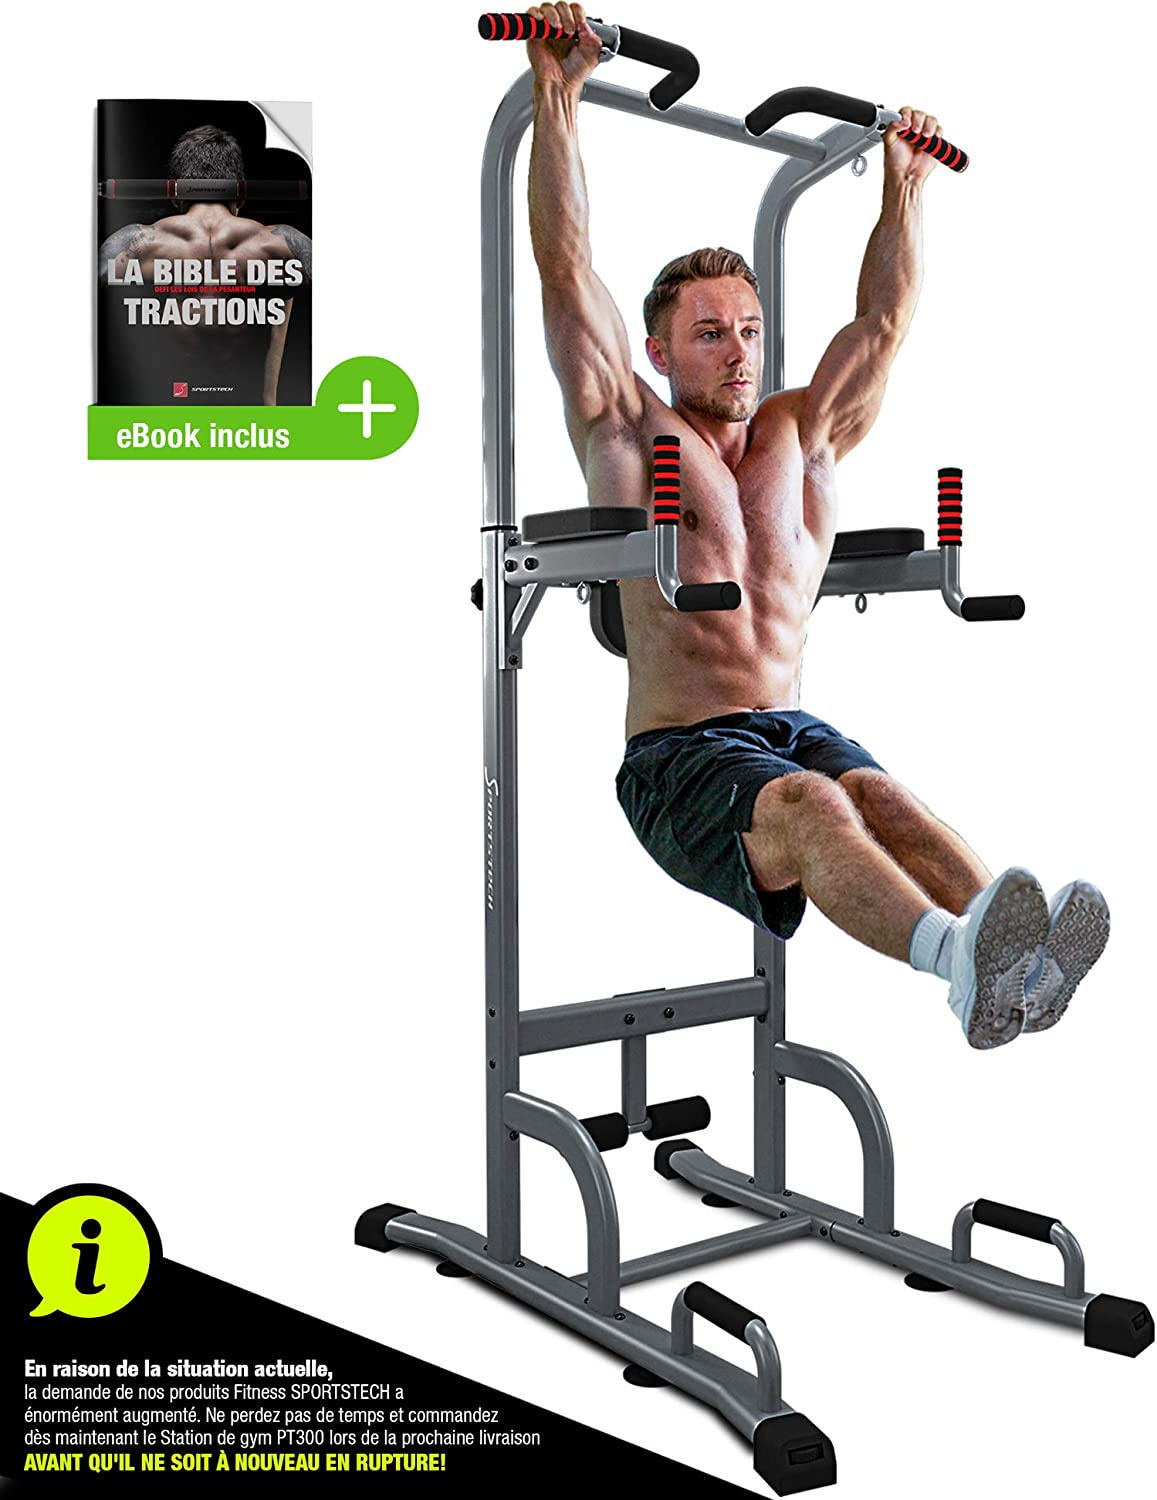 Sportstech PT6 6 in 6 Roman Chair Power Tower Bodybuilding  Multifunctional Pull Up Bar Dip Station Abdominal Armrests Handles for Pump  Fitness TRX